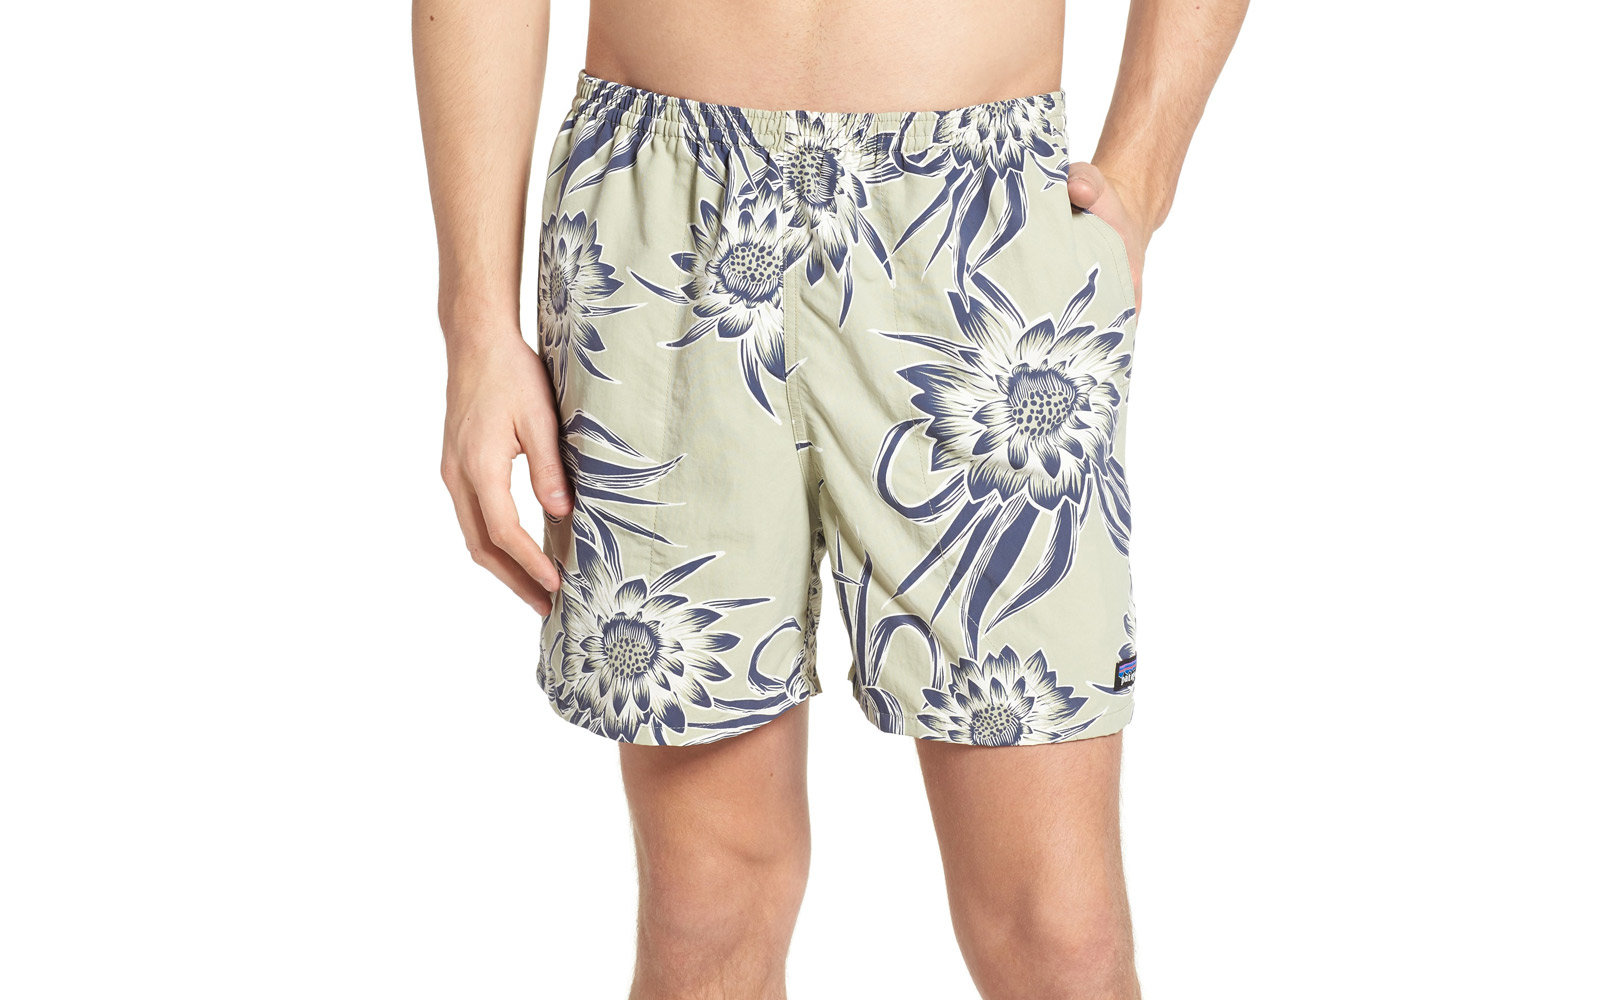 patagonia mens swim trunks